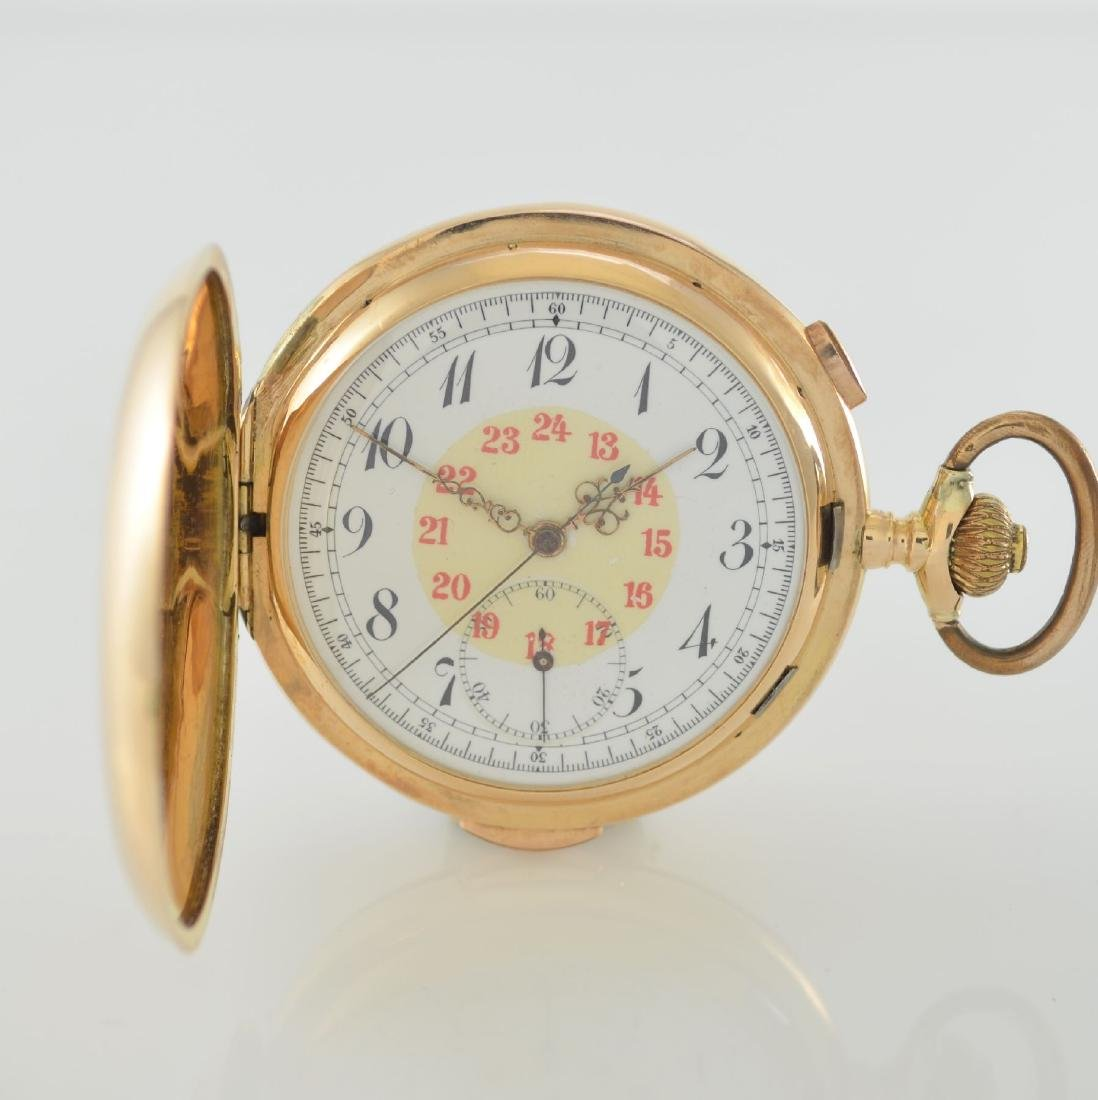 14k pink gold pocket watch with 1/4 repetition